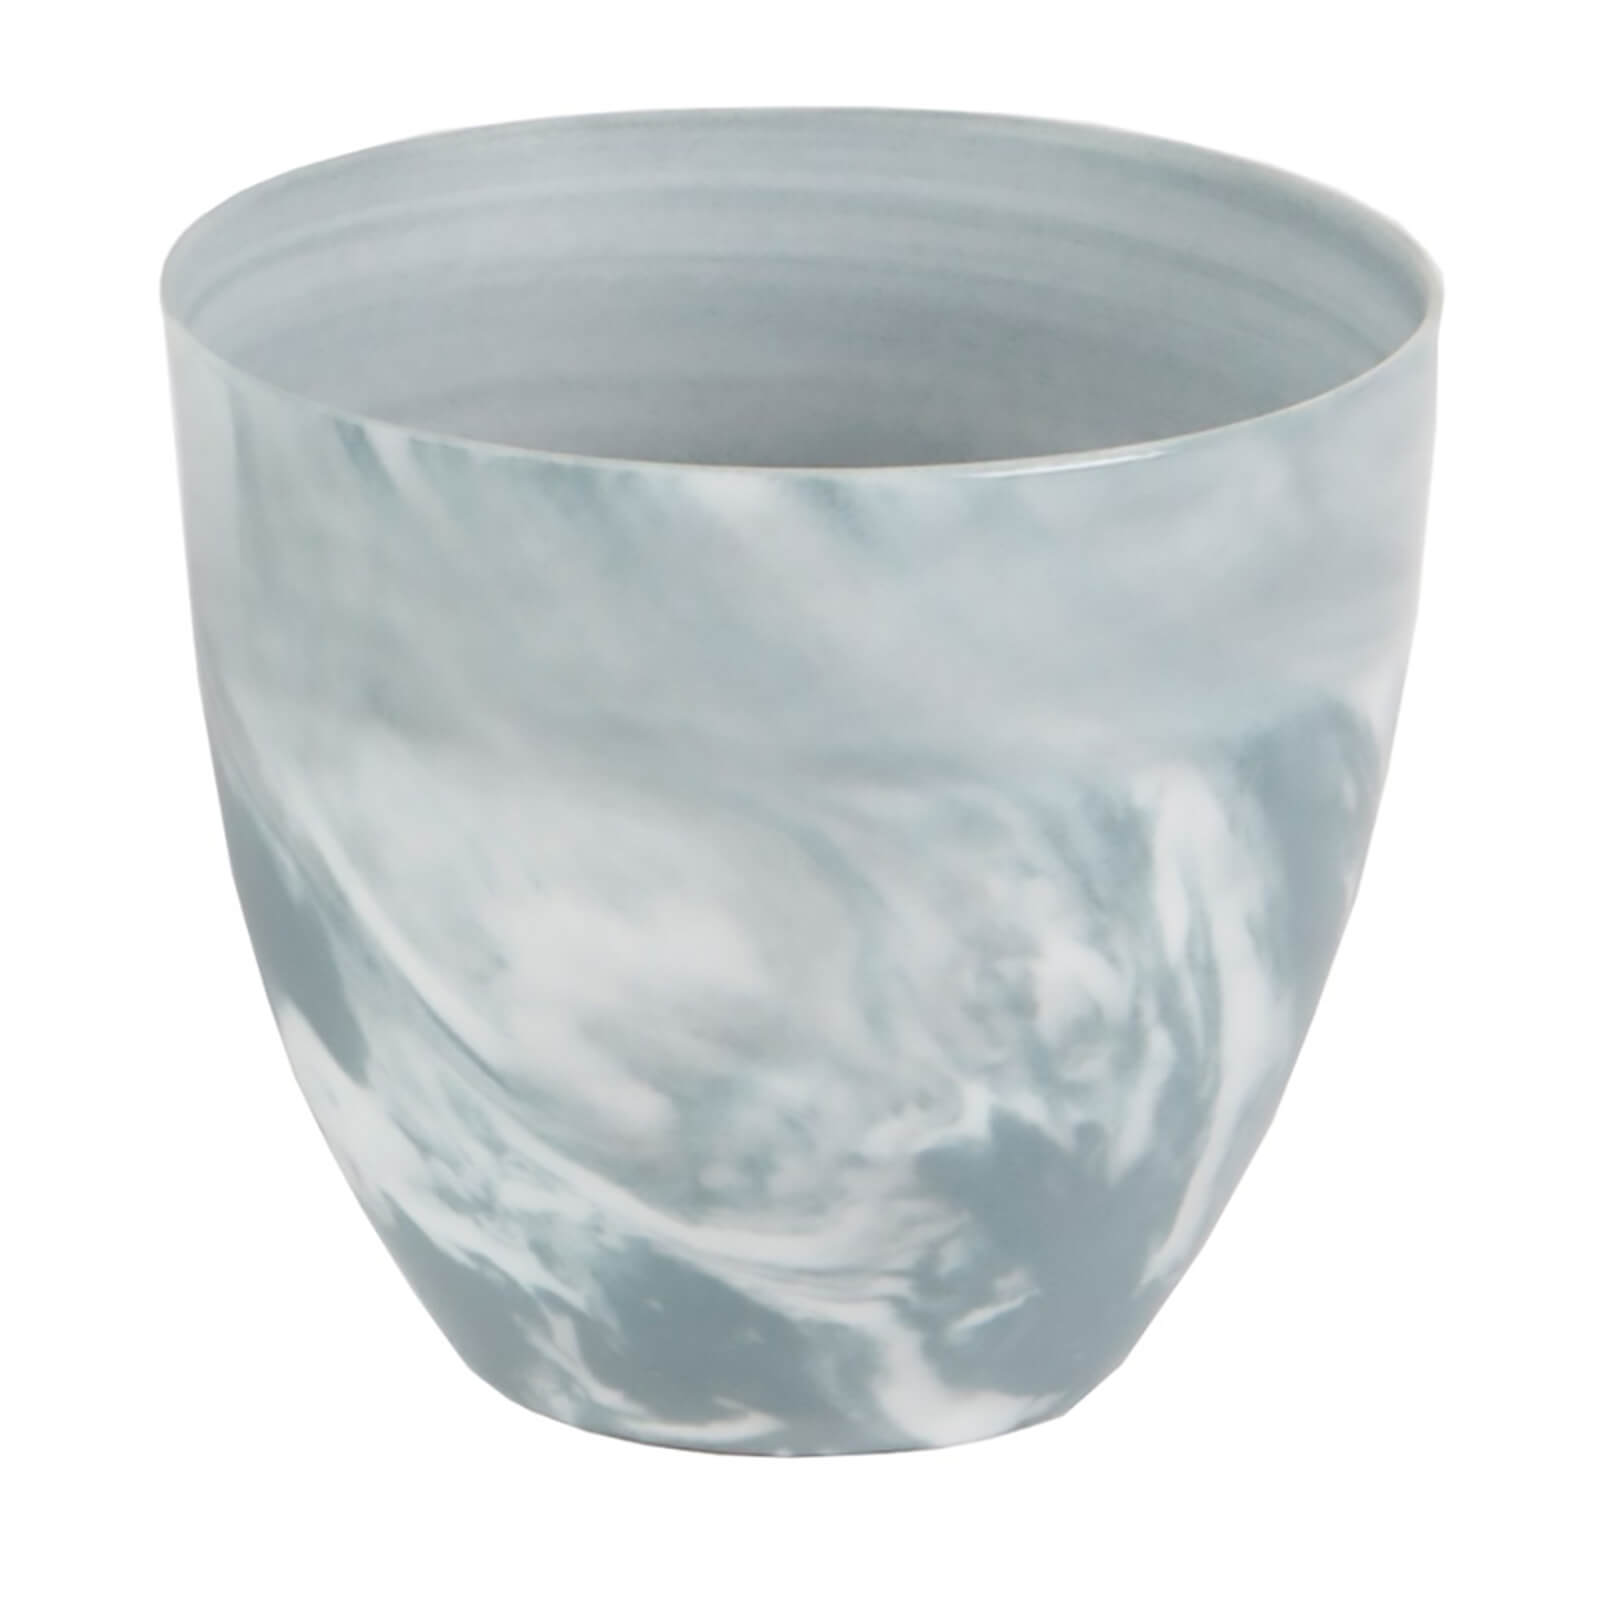 Sass & Belle Mini Marbled Planter